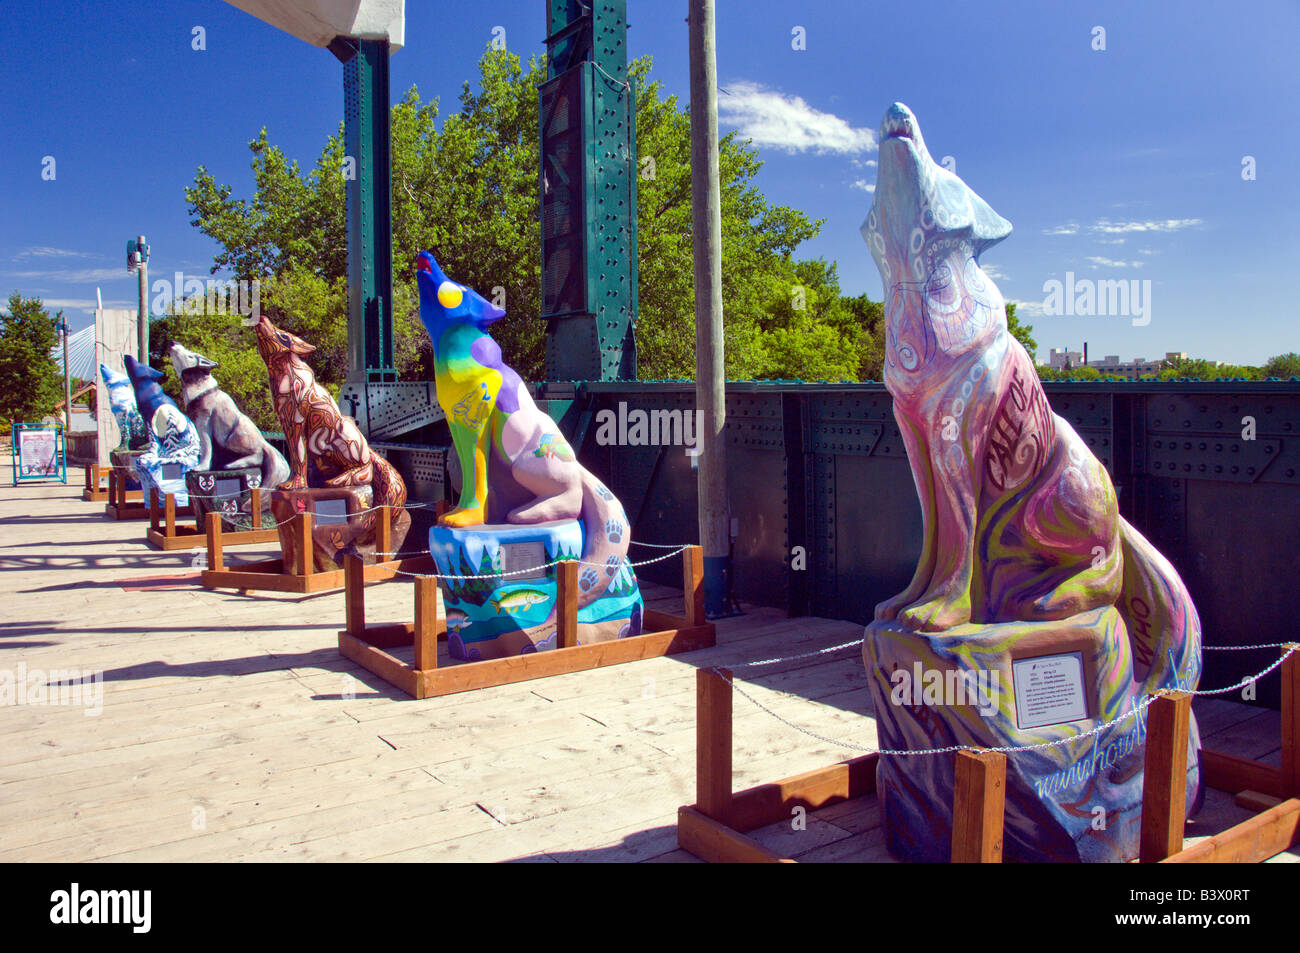 A row of concrete wolfe sculptures at The Forks in Winnipeg Manitoba Canada - Stock Image